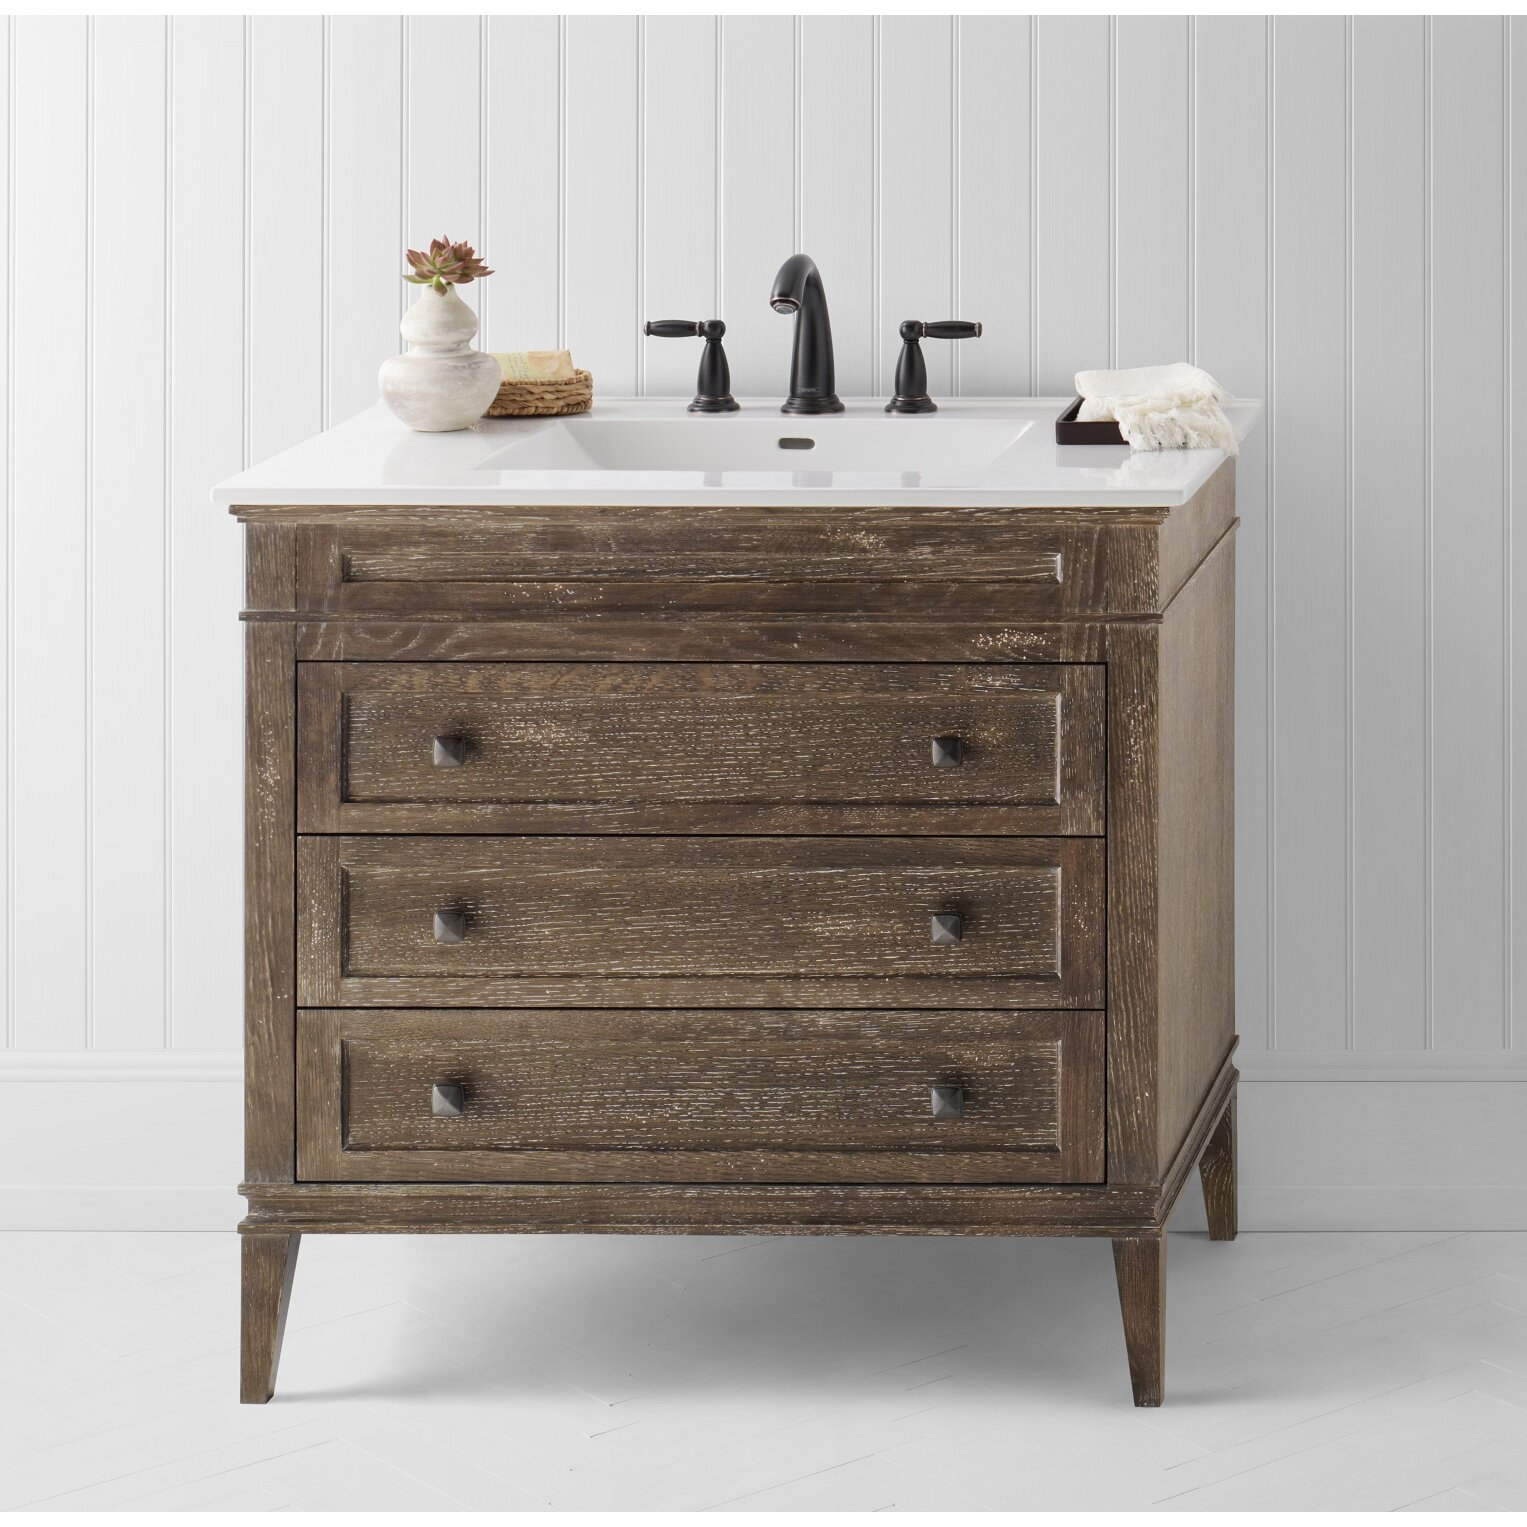 "Rustic Bathroom Vanity Set: Ronbow Laurel 36"" Single Bathroom Vanity Set"